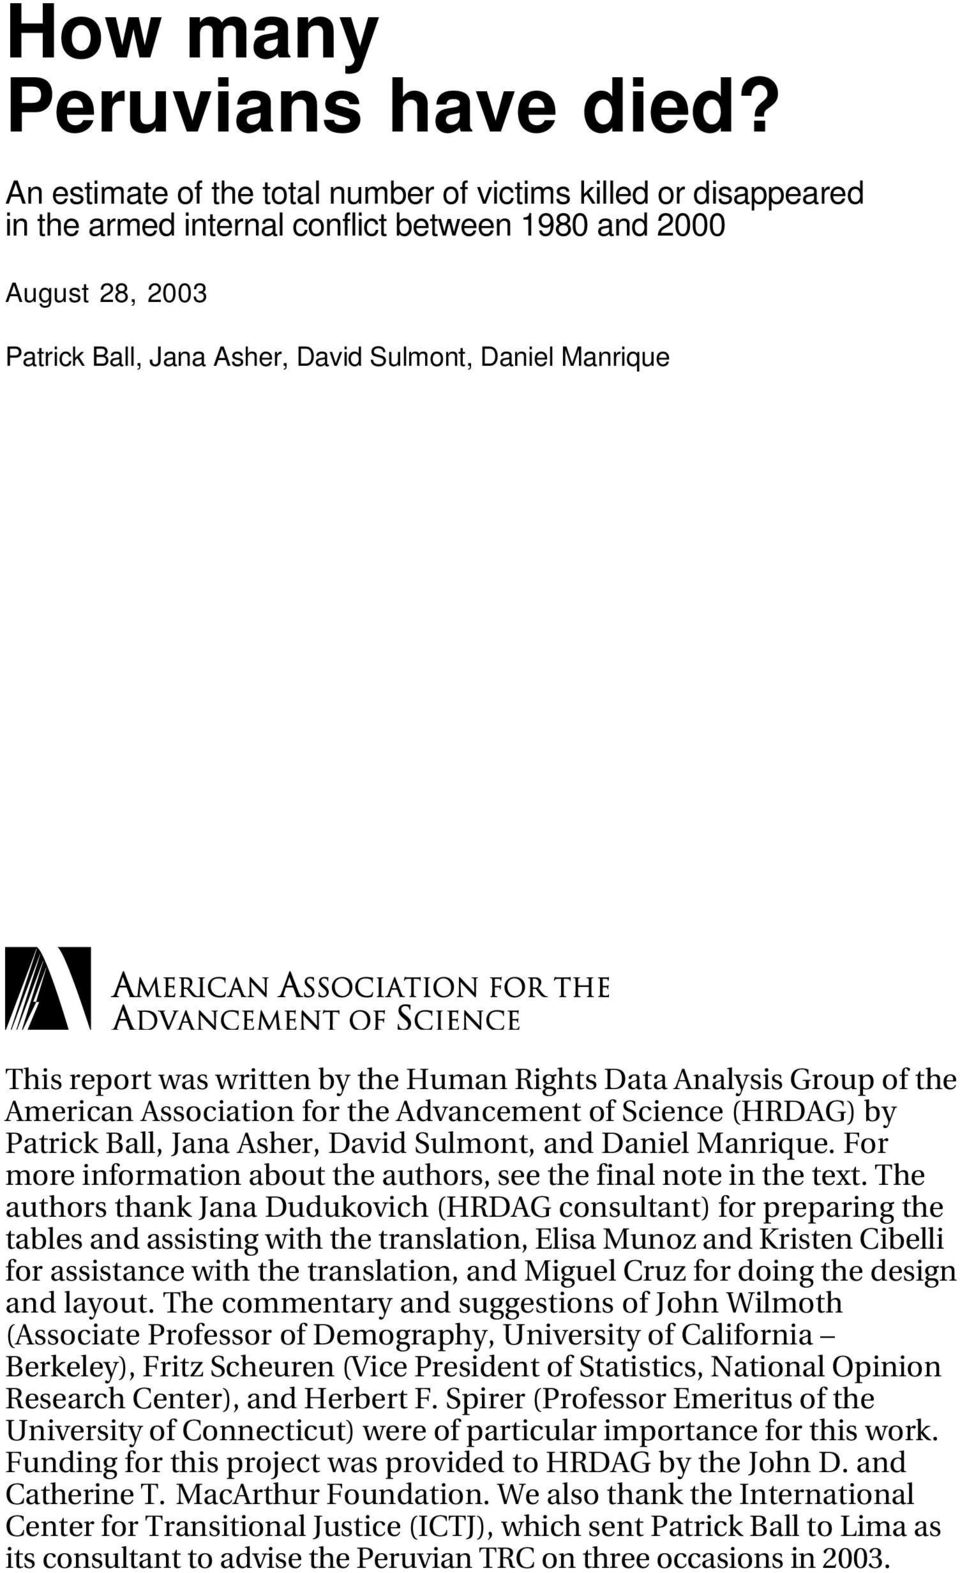 report was written by the Human Rights Data Analysis Group of the American Association for the Advancement of Science (HRDAG) by Patrick Ball, Jana Asher, David Sulmont, and Daniel Manrique.